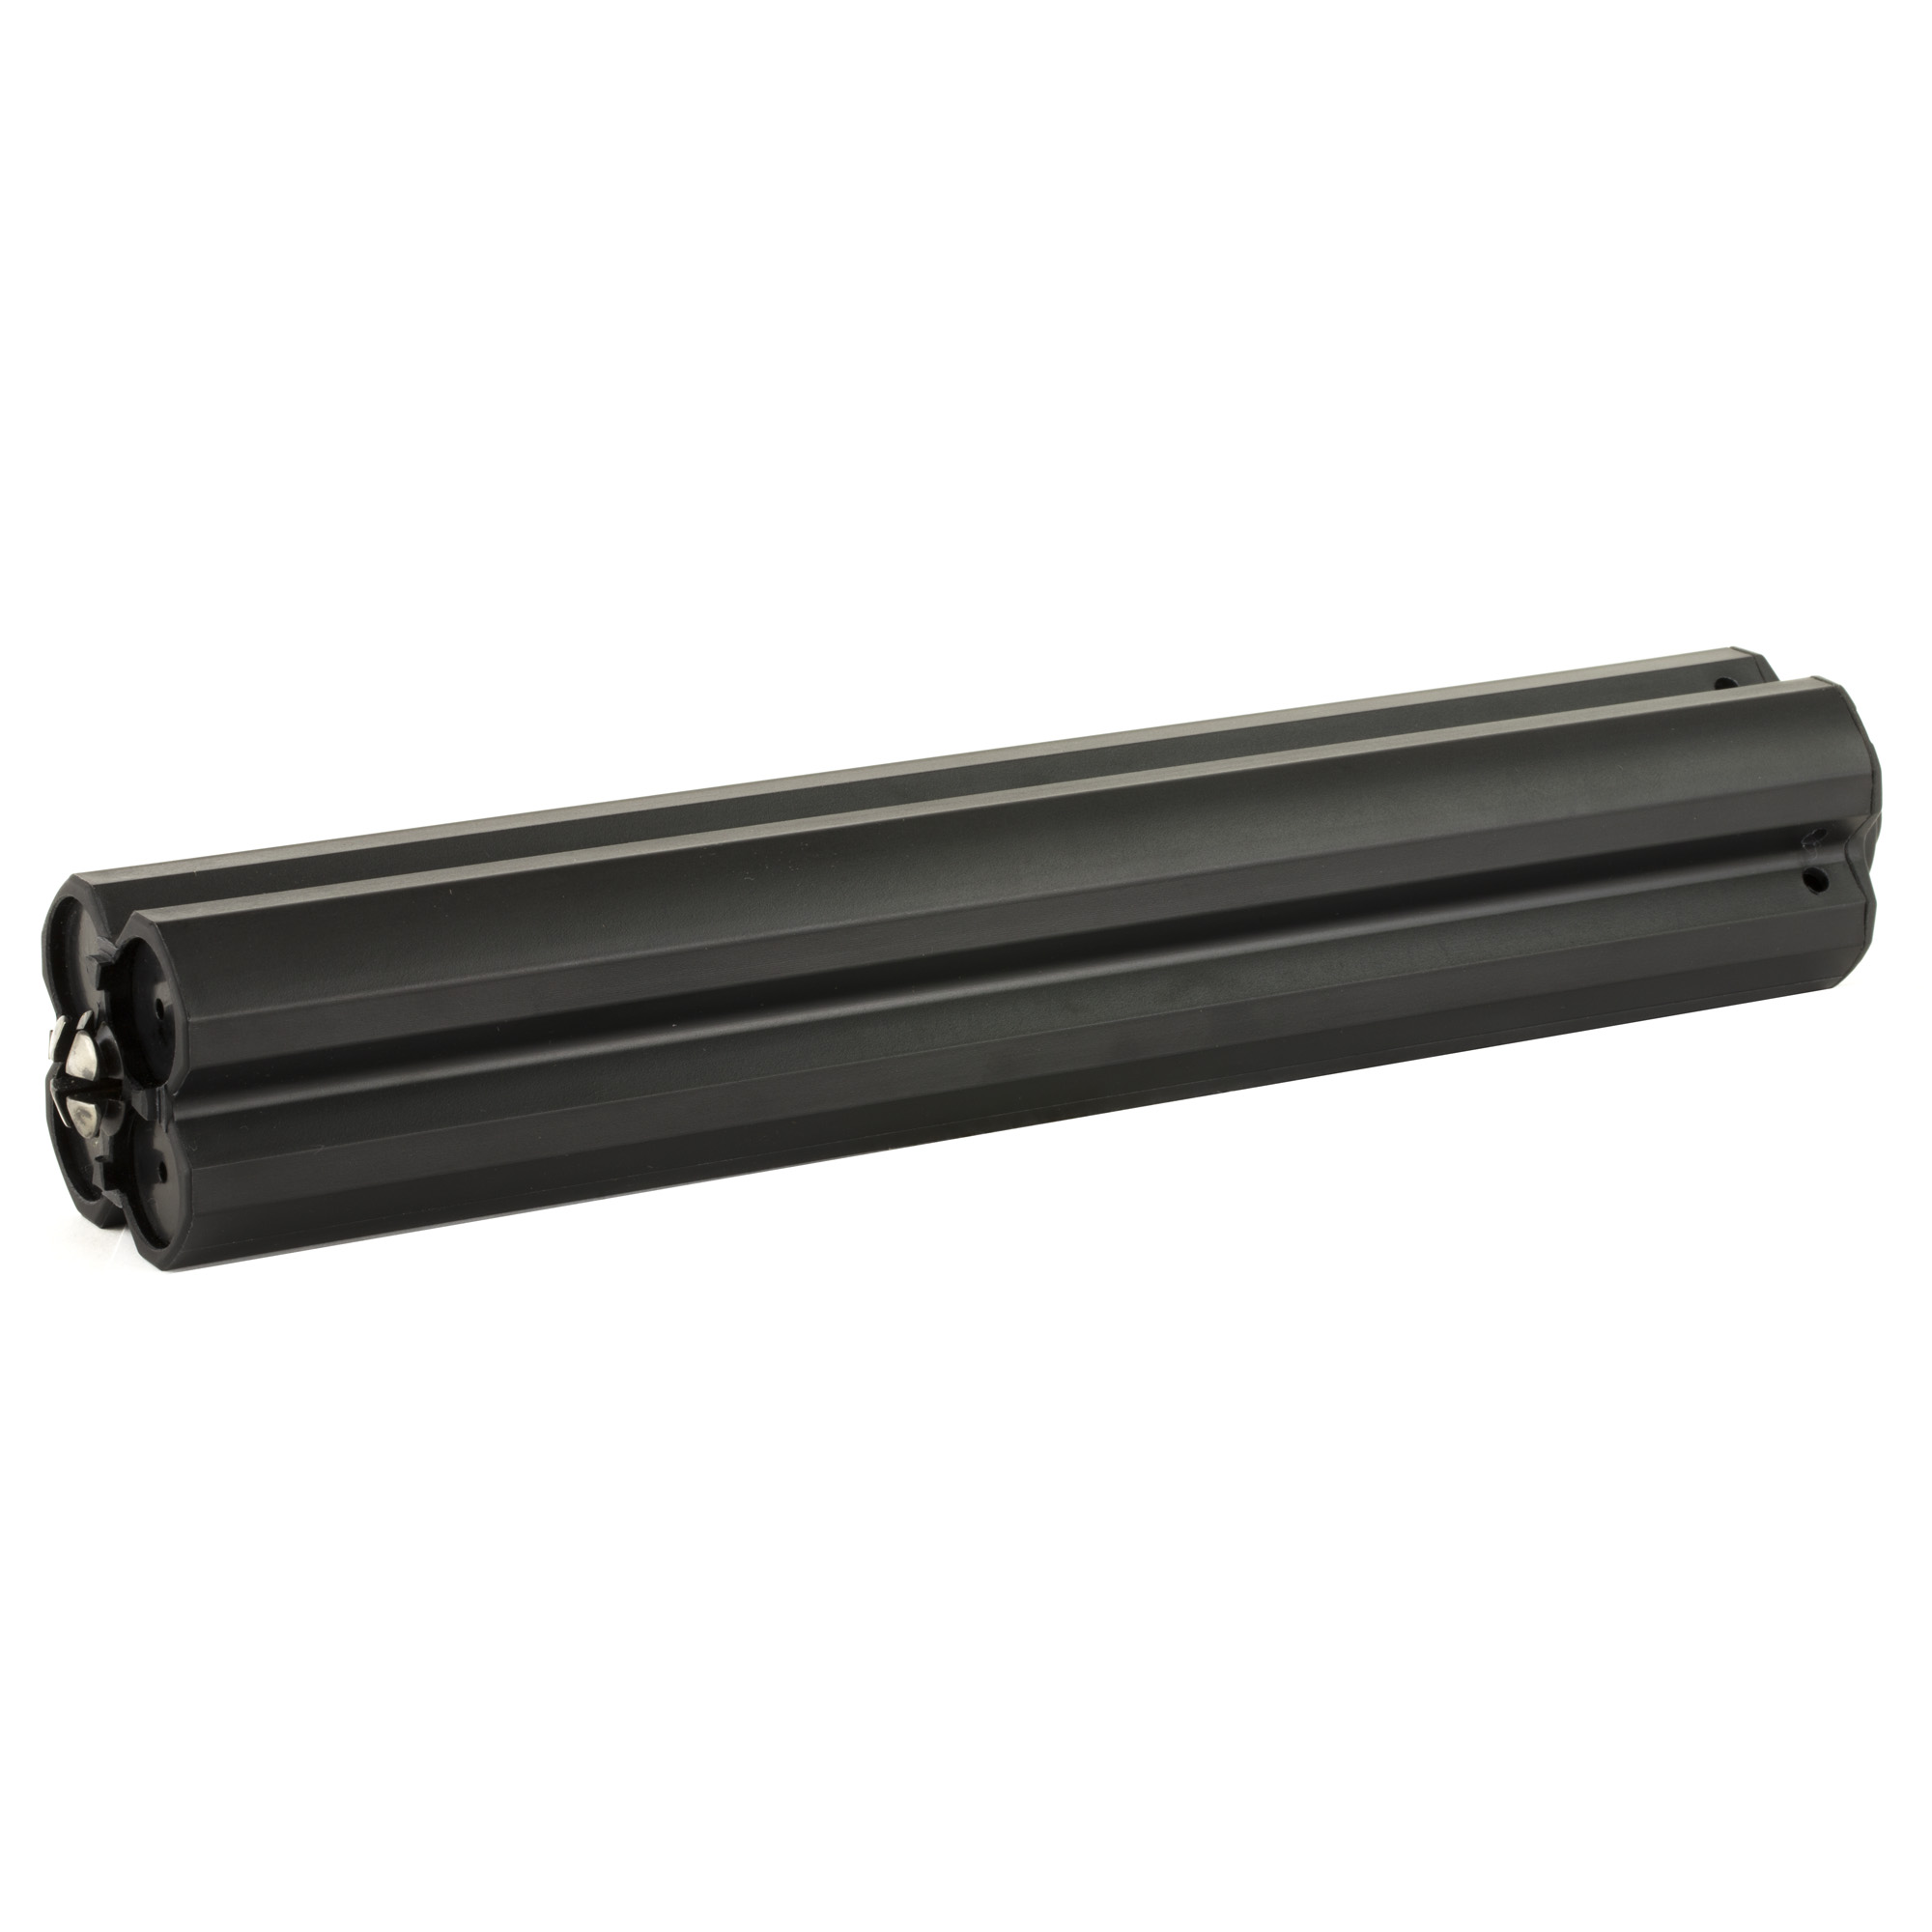 """This is a Rotary"""" Detachable high capacity magazine that holds 8"""" 12"""" or 16 rounds of either 2-3/4 or 3 inch shotshells. It fits the SRM 1216 and provides unsurpassed firepower"""" force multiplication"""" and tactical advantages."""